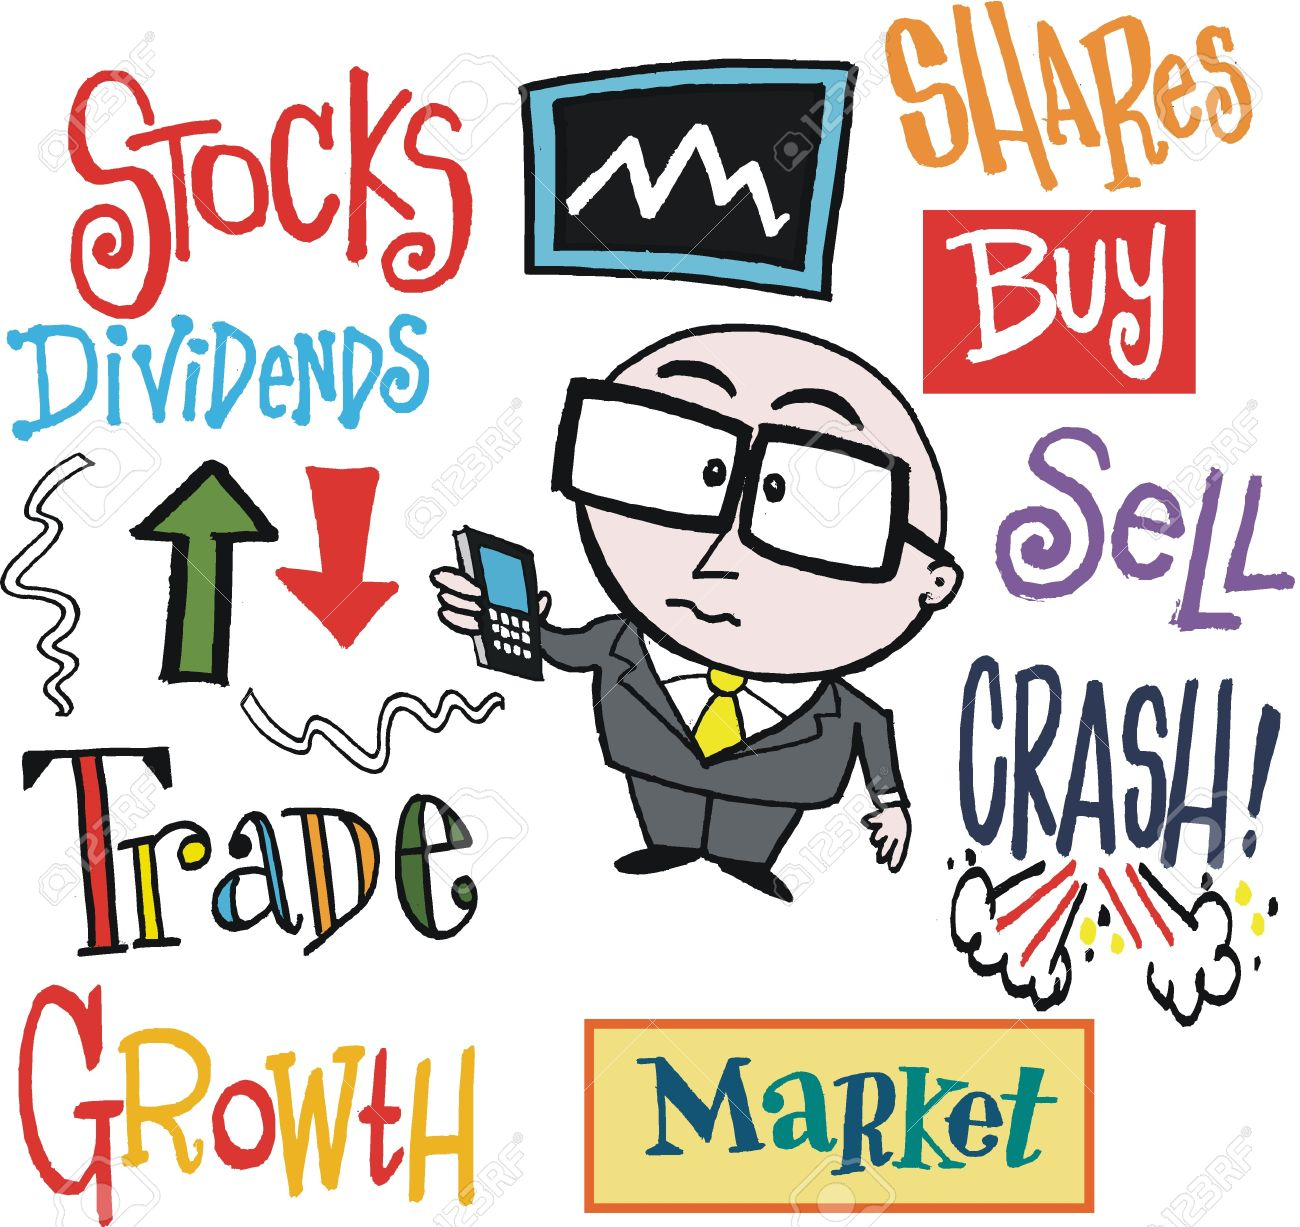 Stock in trade clipart.